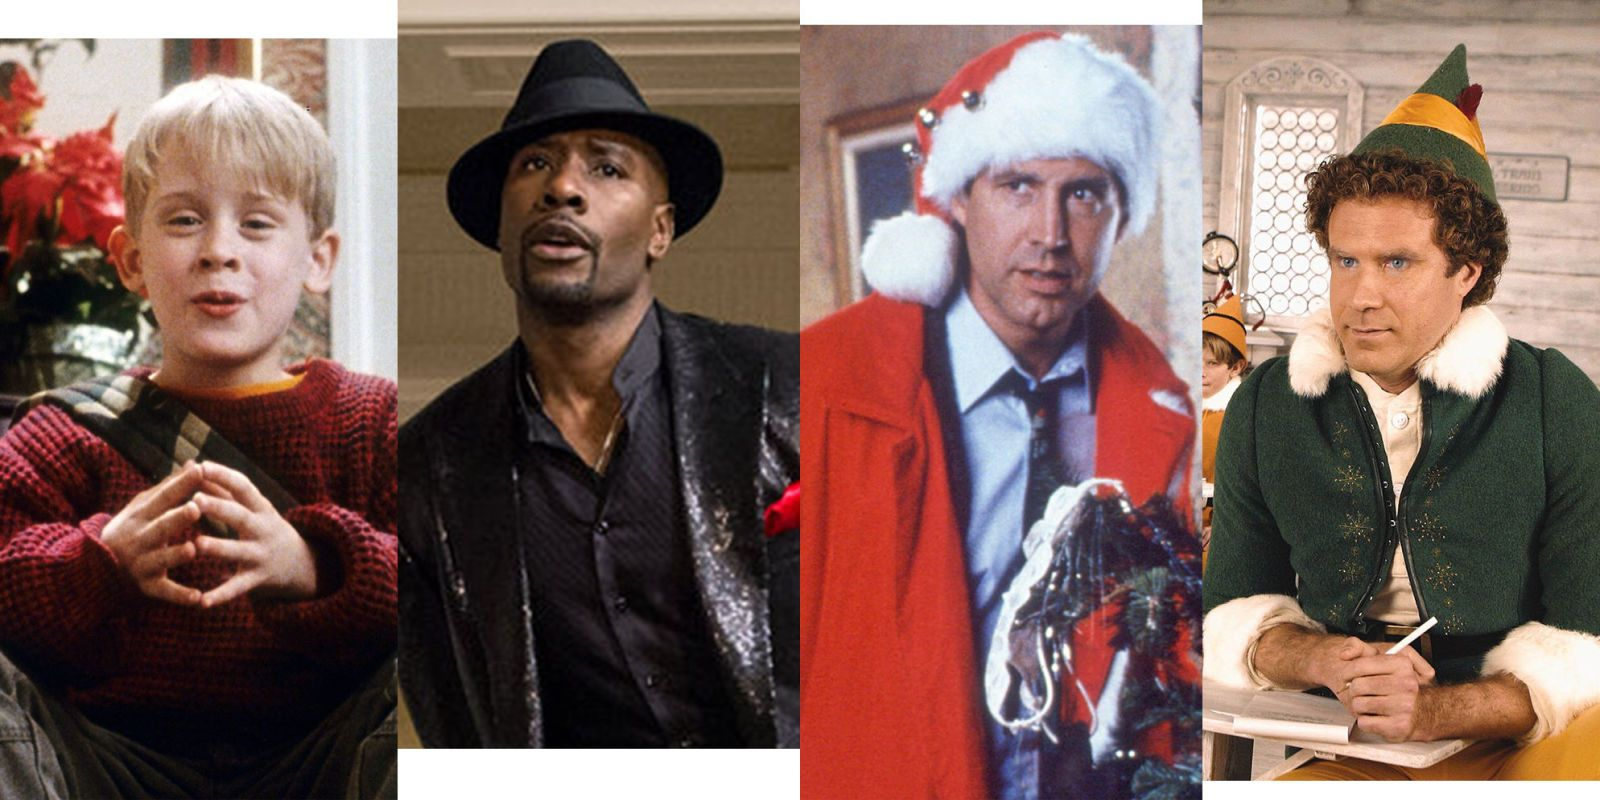 25 Best Christmas Movies of All Time - Best Christmas Films Ever Made